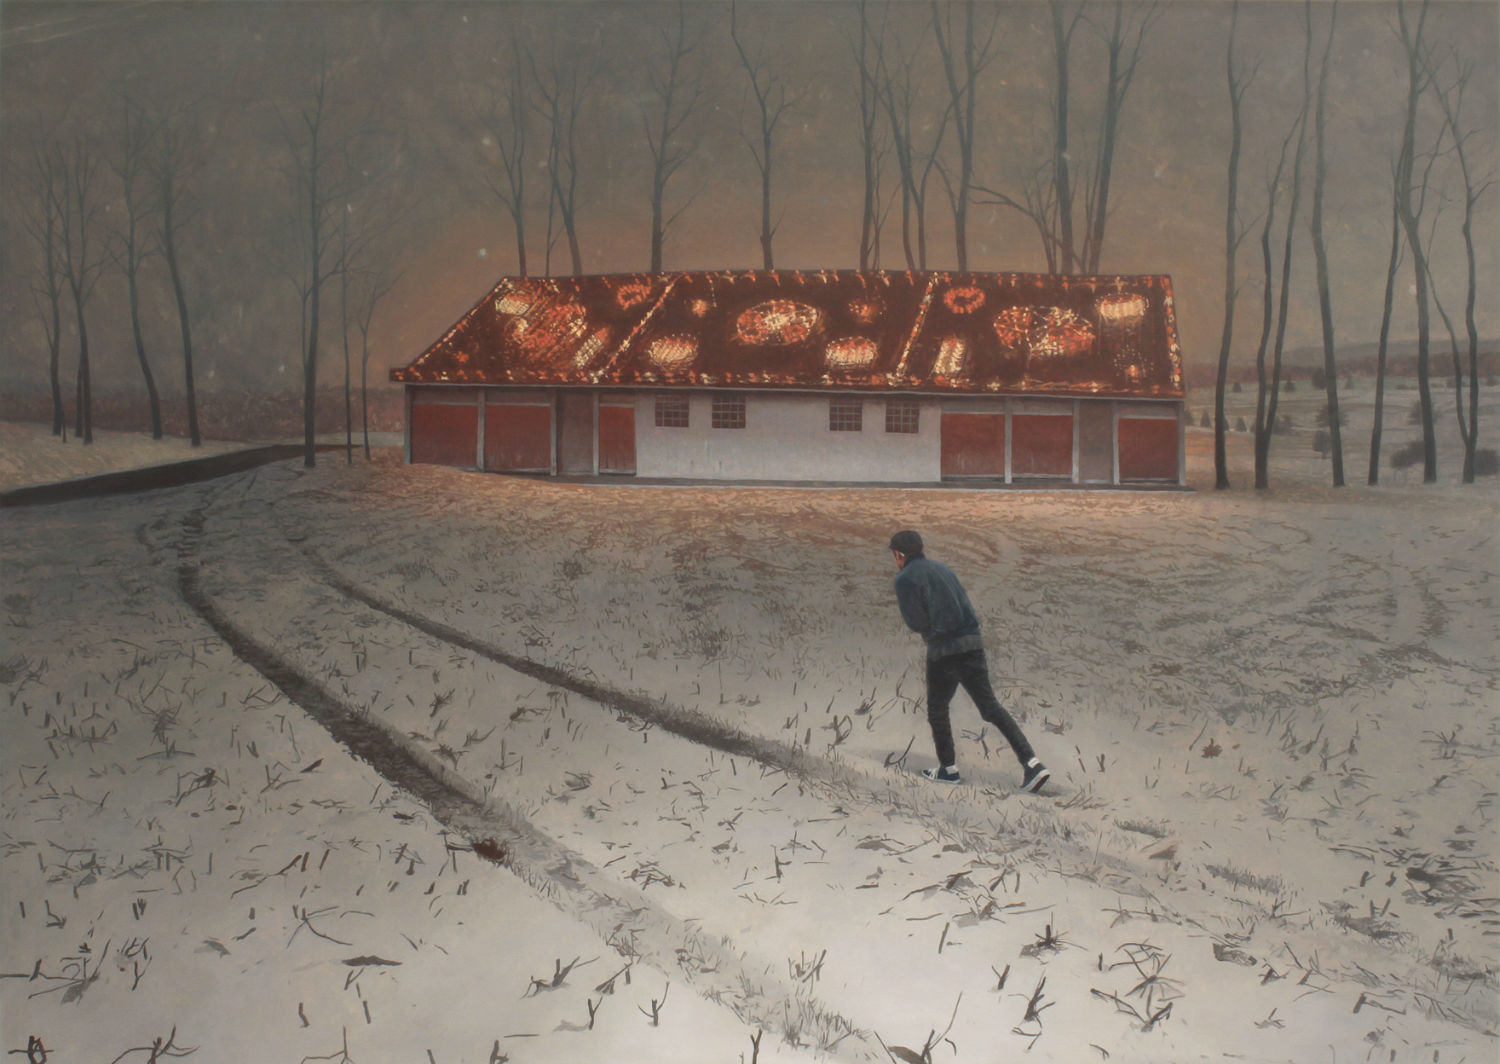 alex roulette painting hyper real landscape colour snow